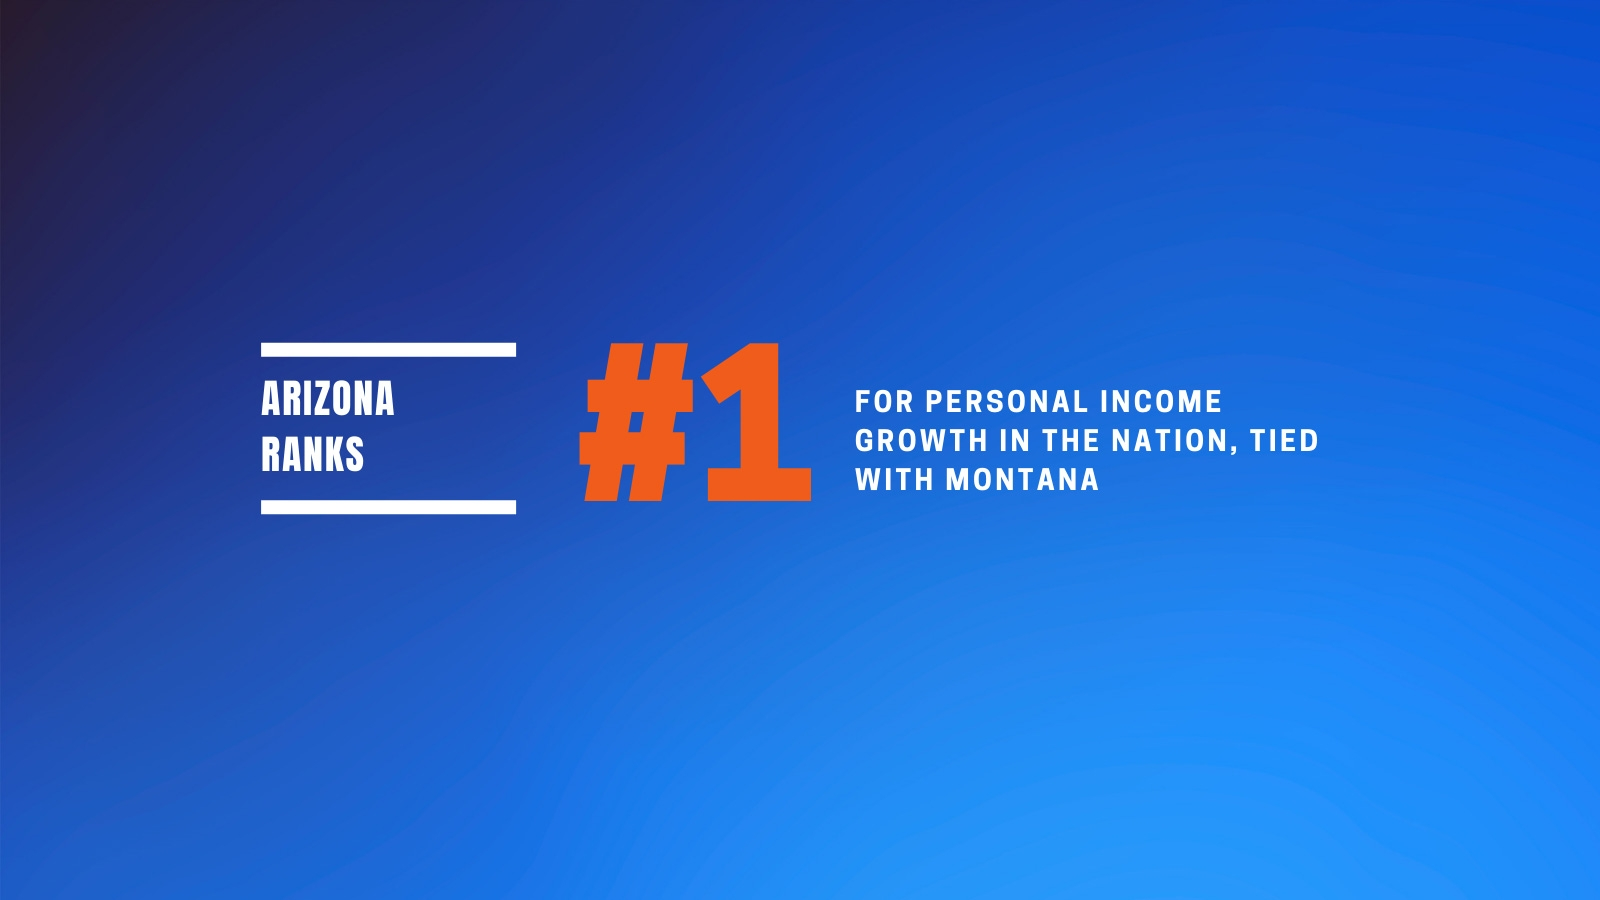 Arizona ranks #1 for personal income growth in the nation.